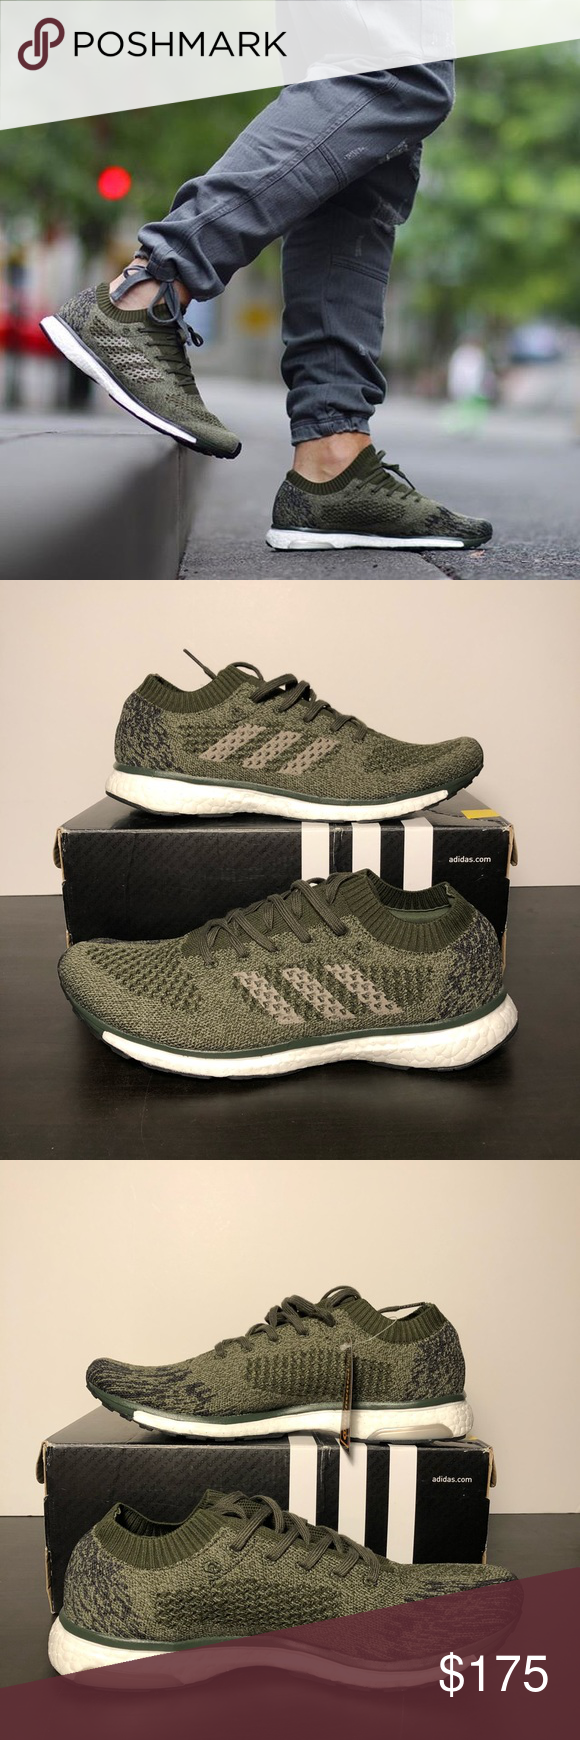 low priced b83ee 60e20 Adidas adizero prime LTD 'Olive' Brand New Adidas Adizero Prime LTD Olive  Green Perfect sneakers for the spring/summer Lightweight breathable prime  knit ...